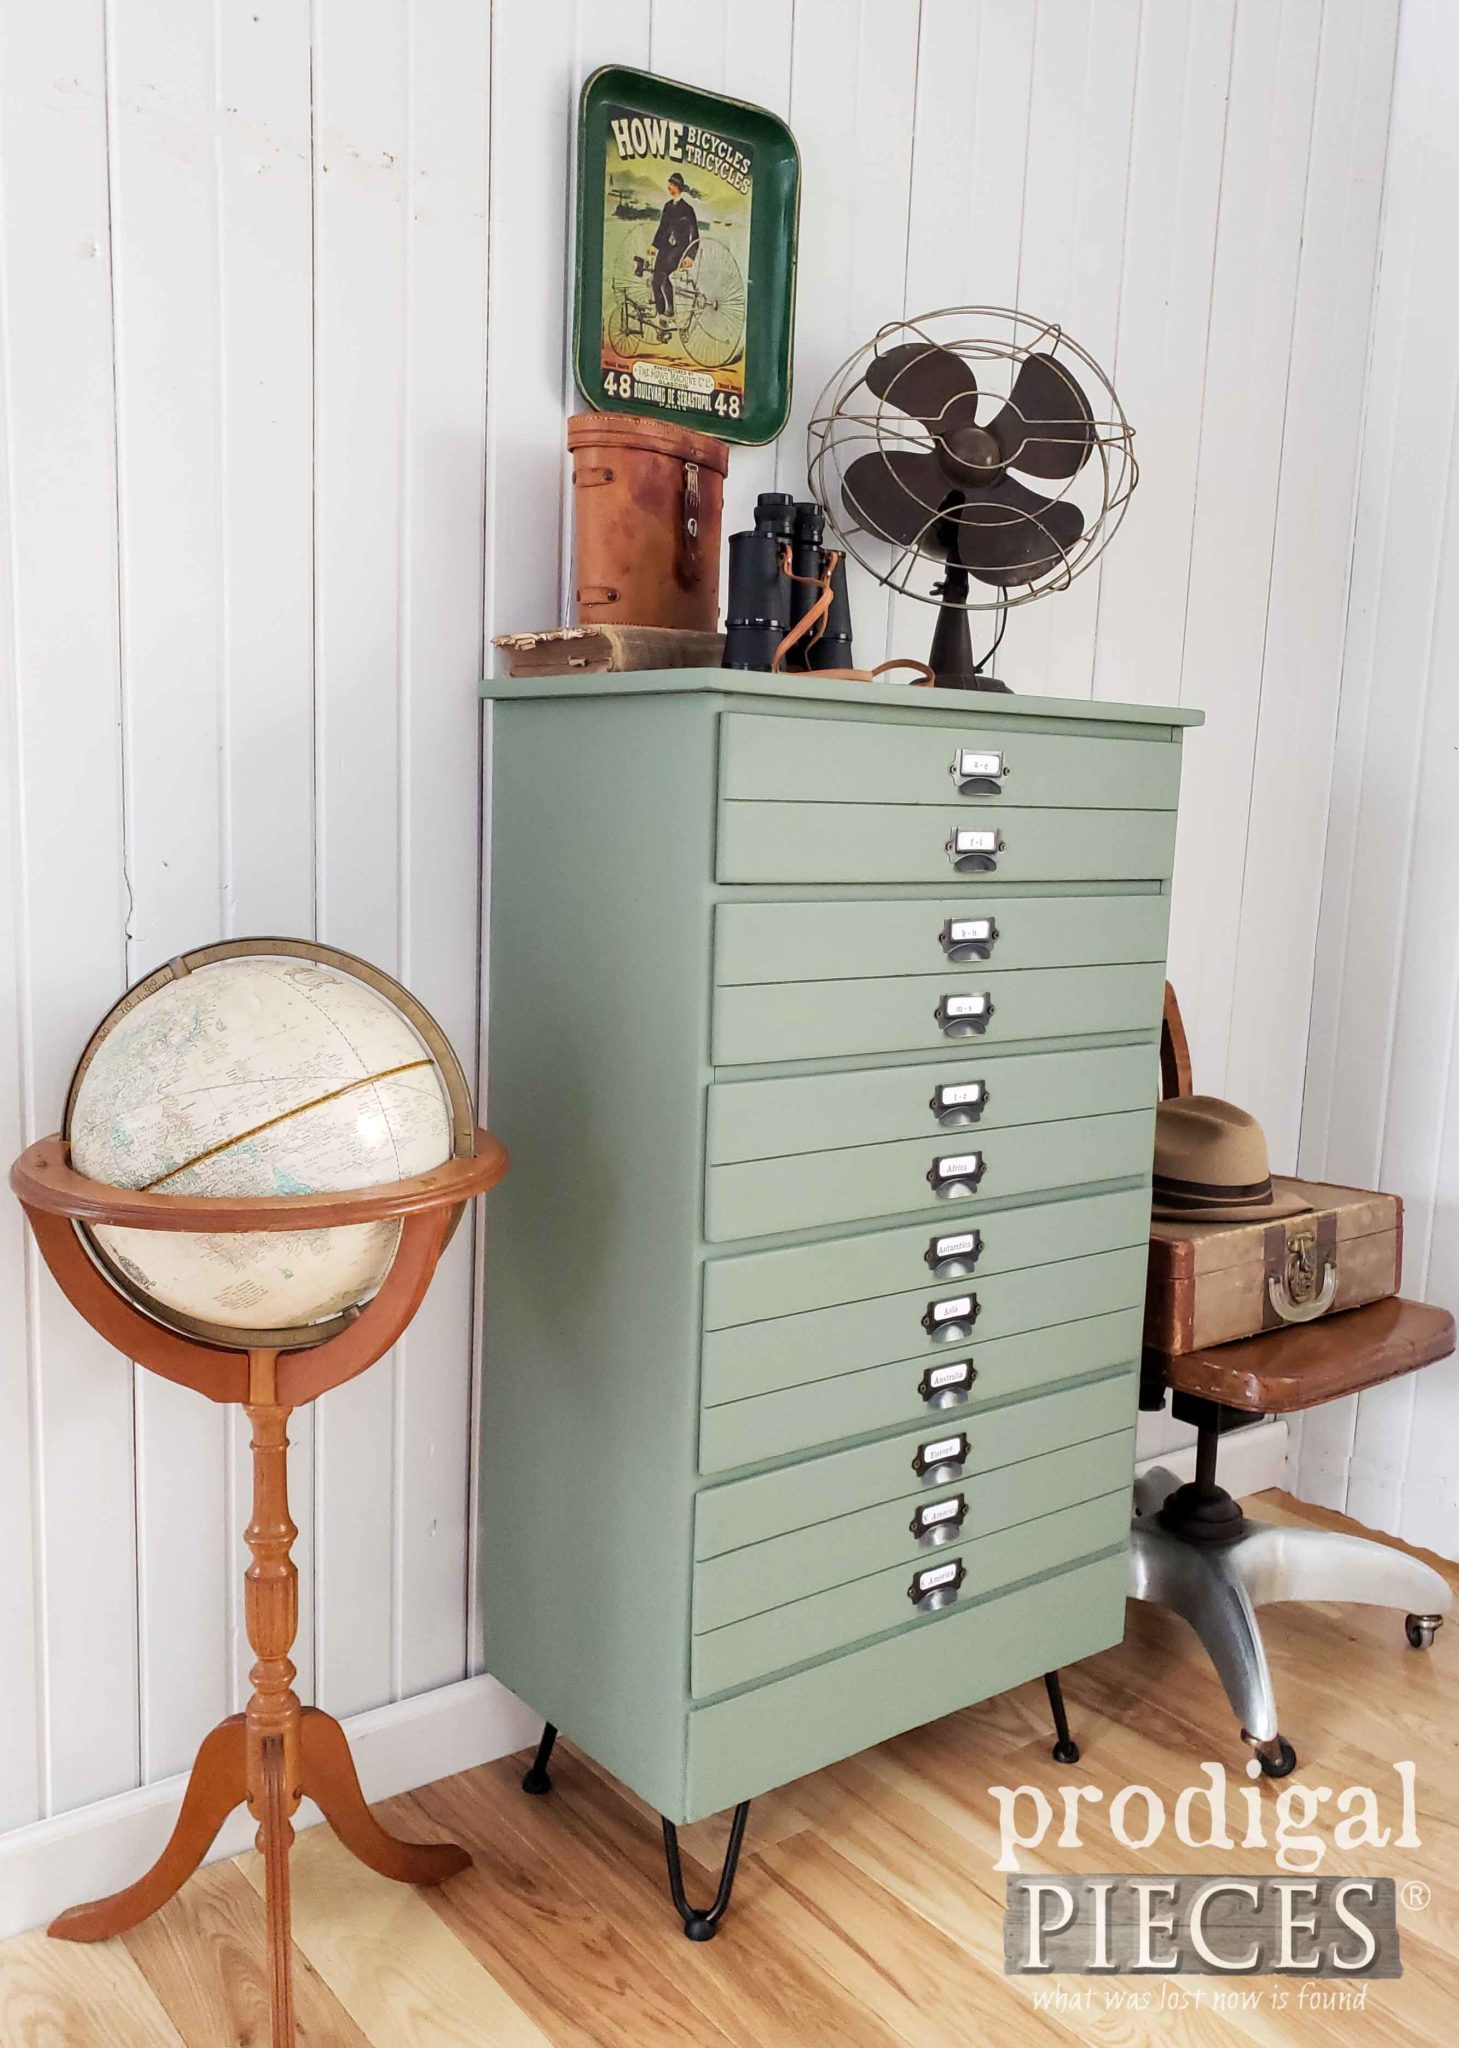 Vintage Chest of Drawers Becomes a Faux Map Cabinet by Larissa of Prodigal Pieces | prodigalpieces.com #prodigalpieces #diy #home #furniture #homedecor #farmhouse #homedecorideas